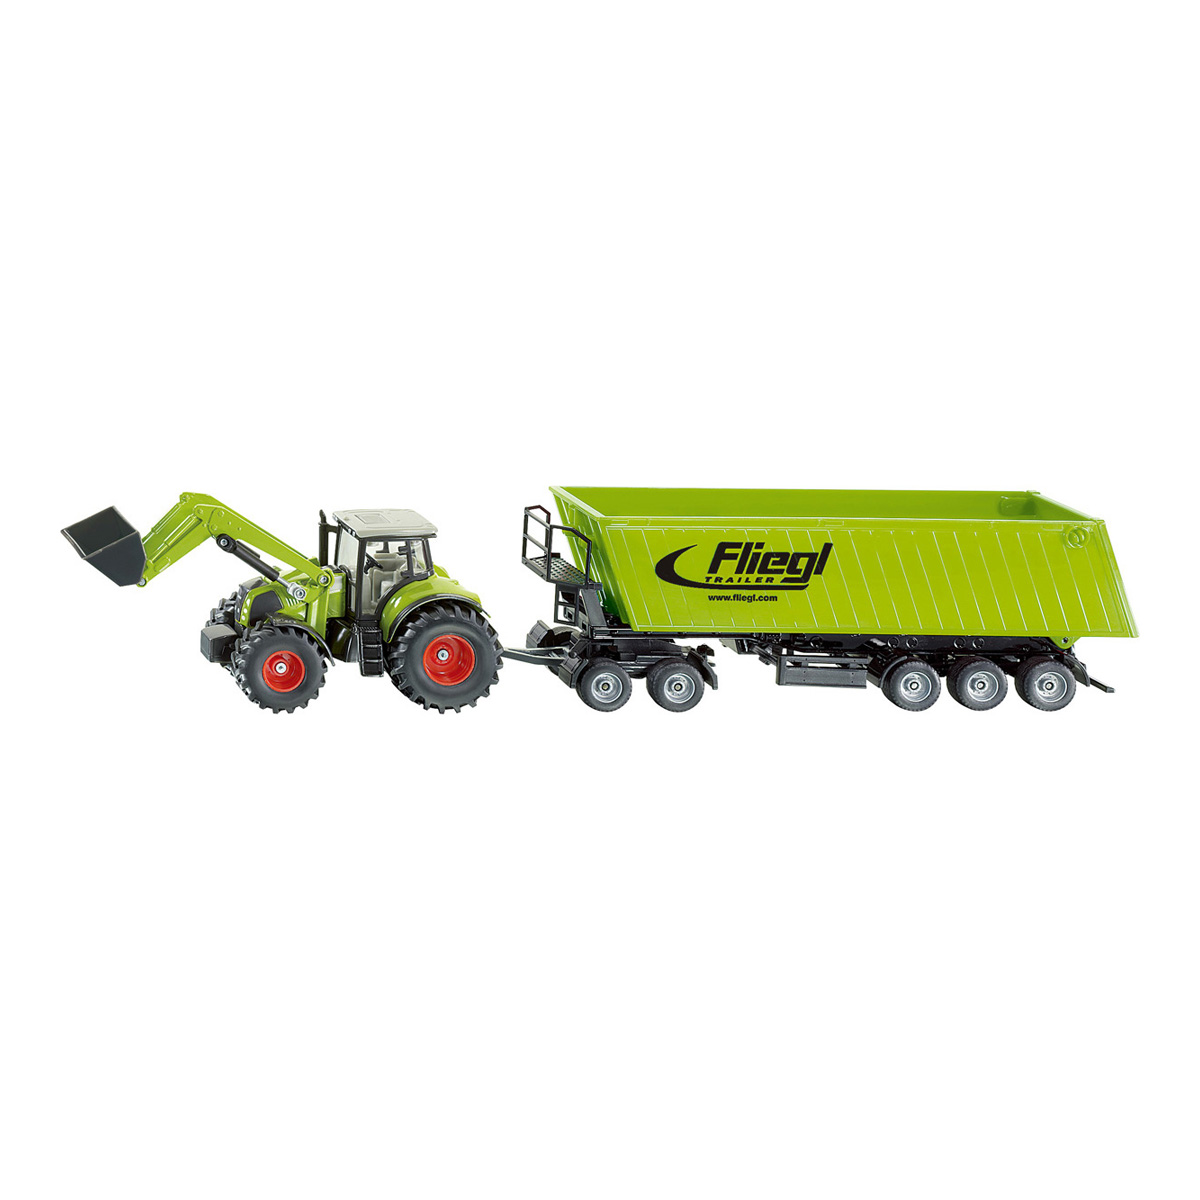 Tractor with front loader 1/50(ジク・SIKU)